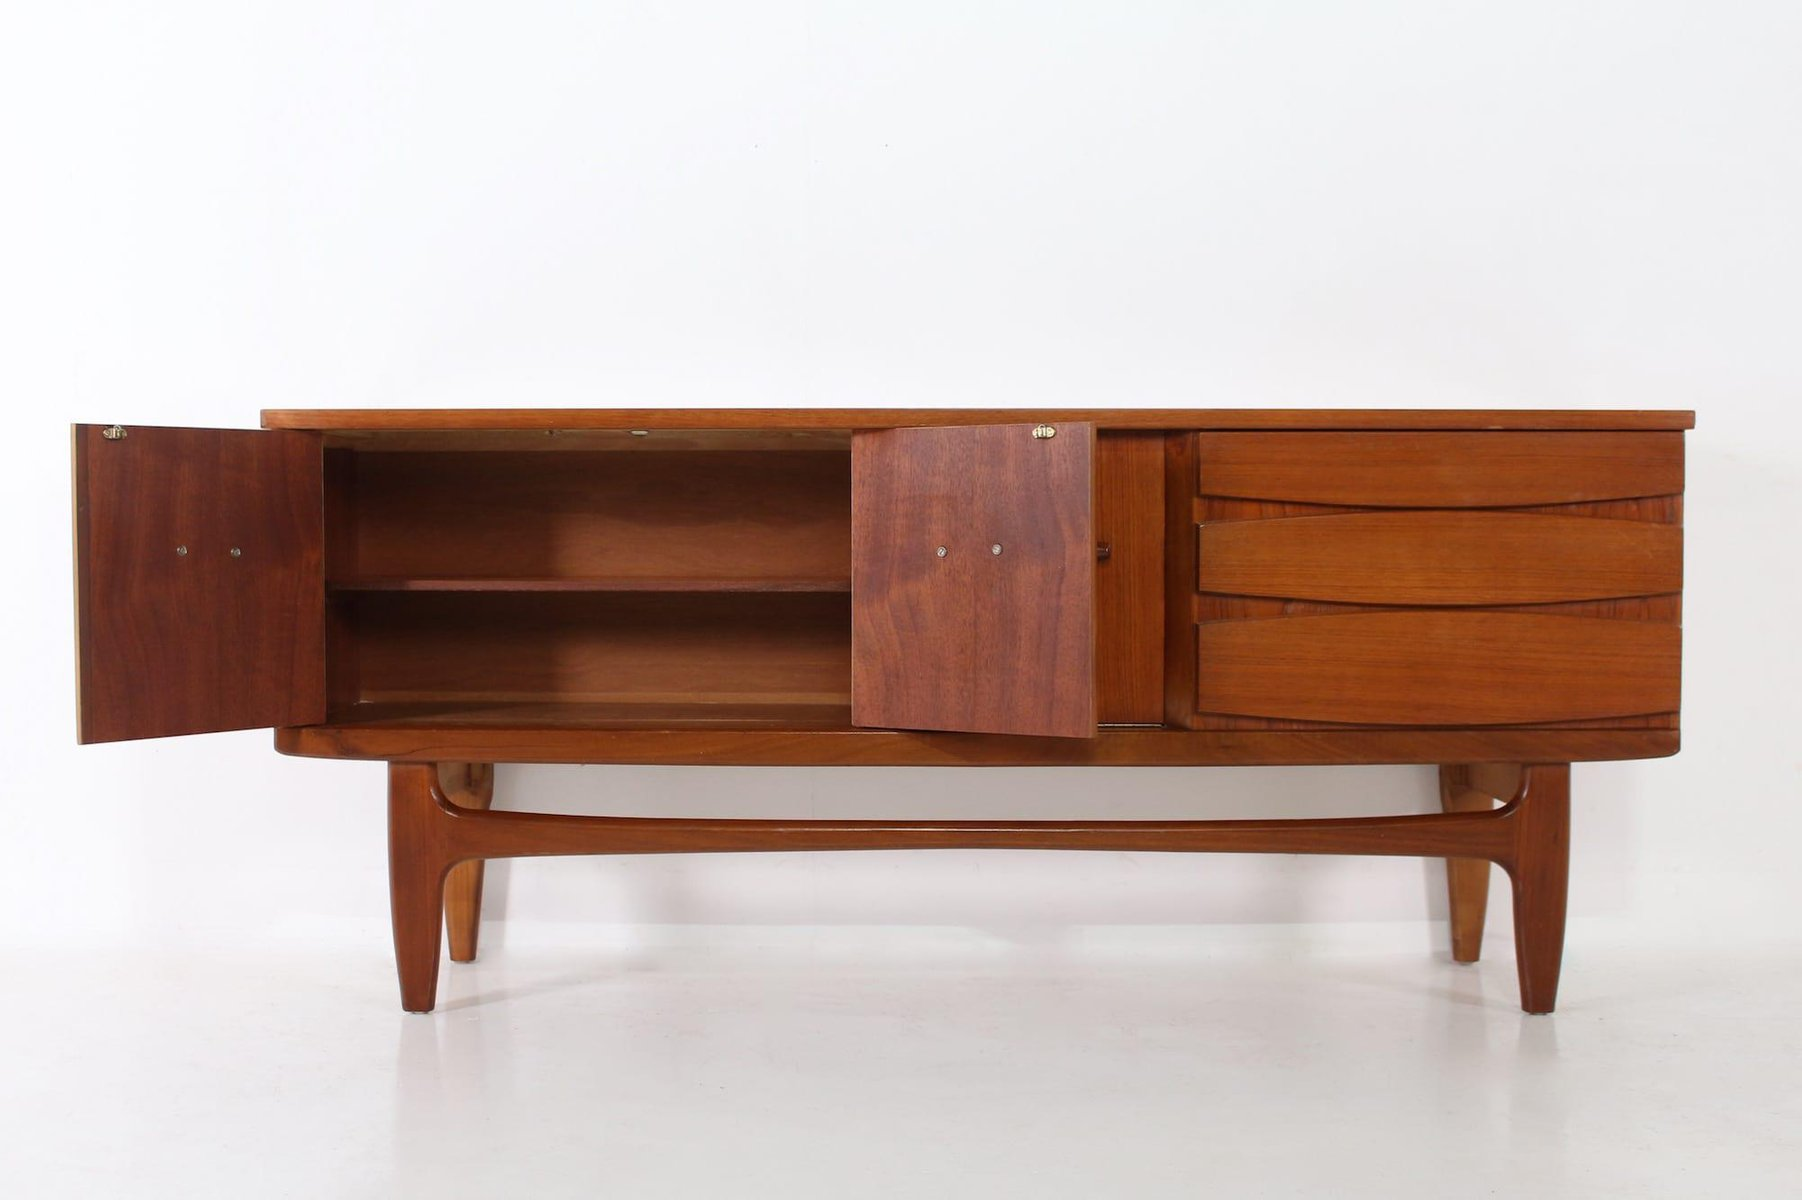 Sideboard Antik Scandinavian Teak Sideboard, 1960s For Sale At Pamono